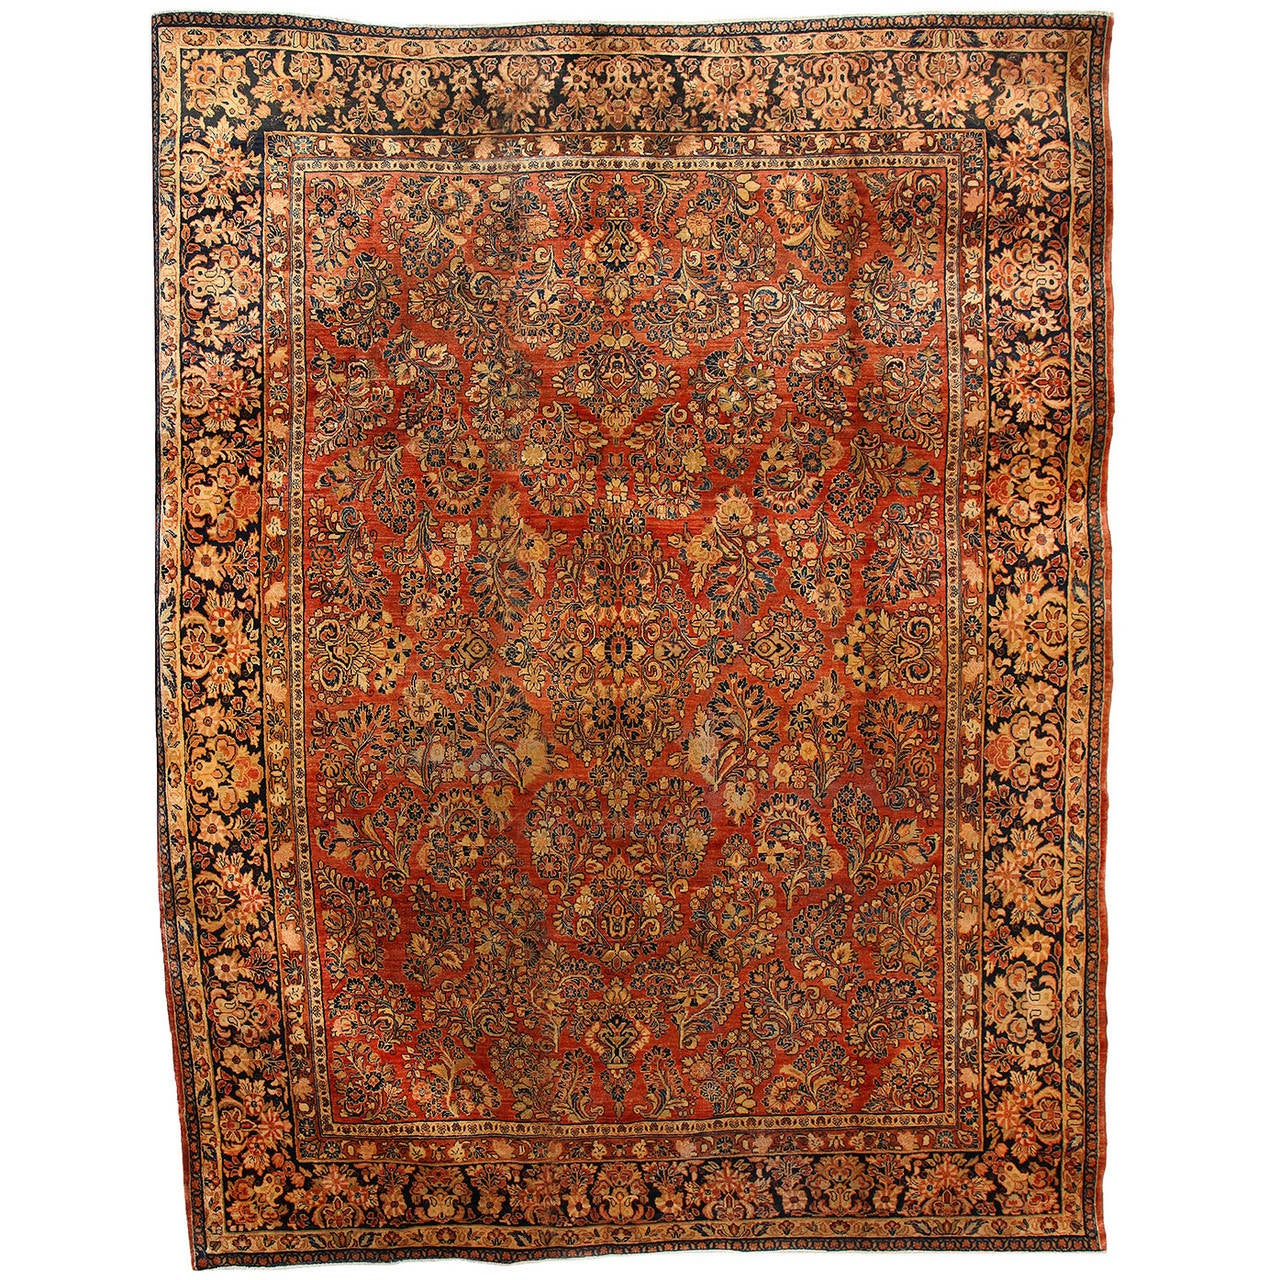 Persian Sarouk Carpet with Pure Wool Pile and Natural Vegetable Dyes, circa 1910 For Sale